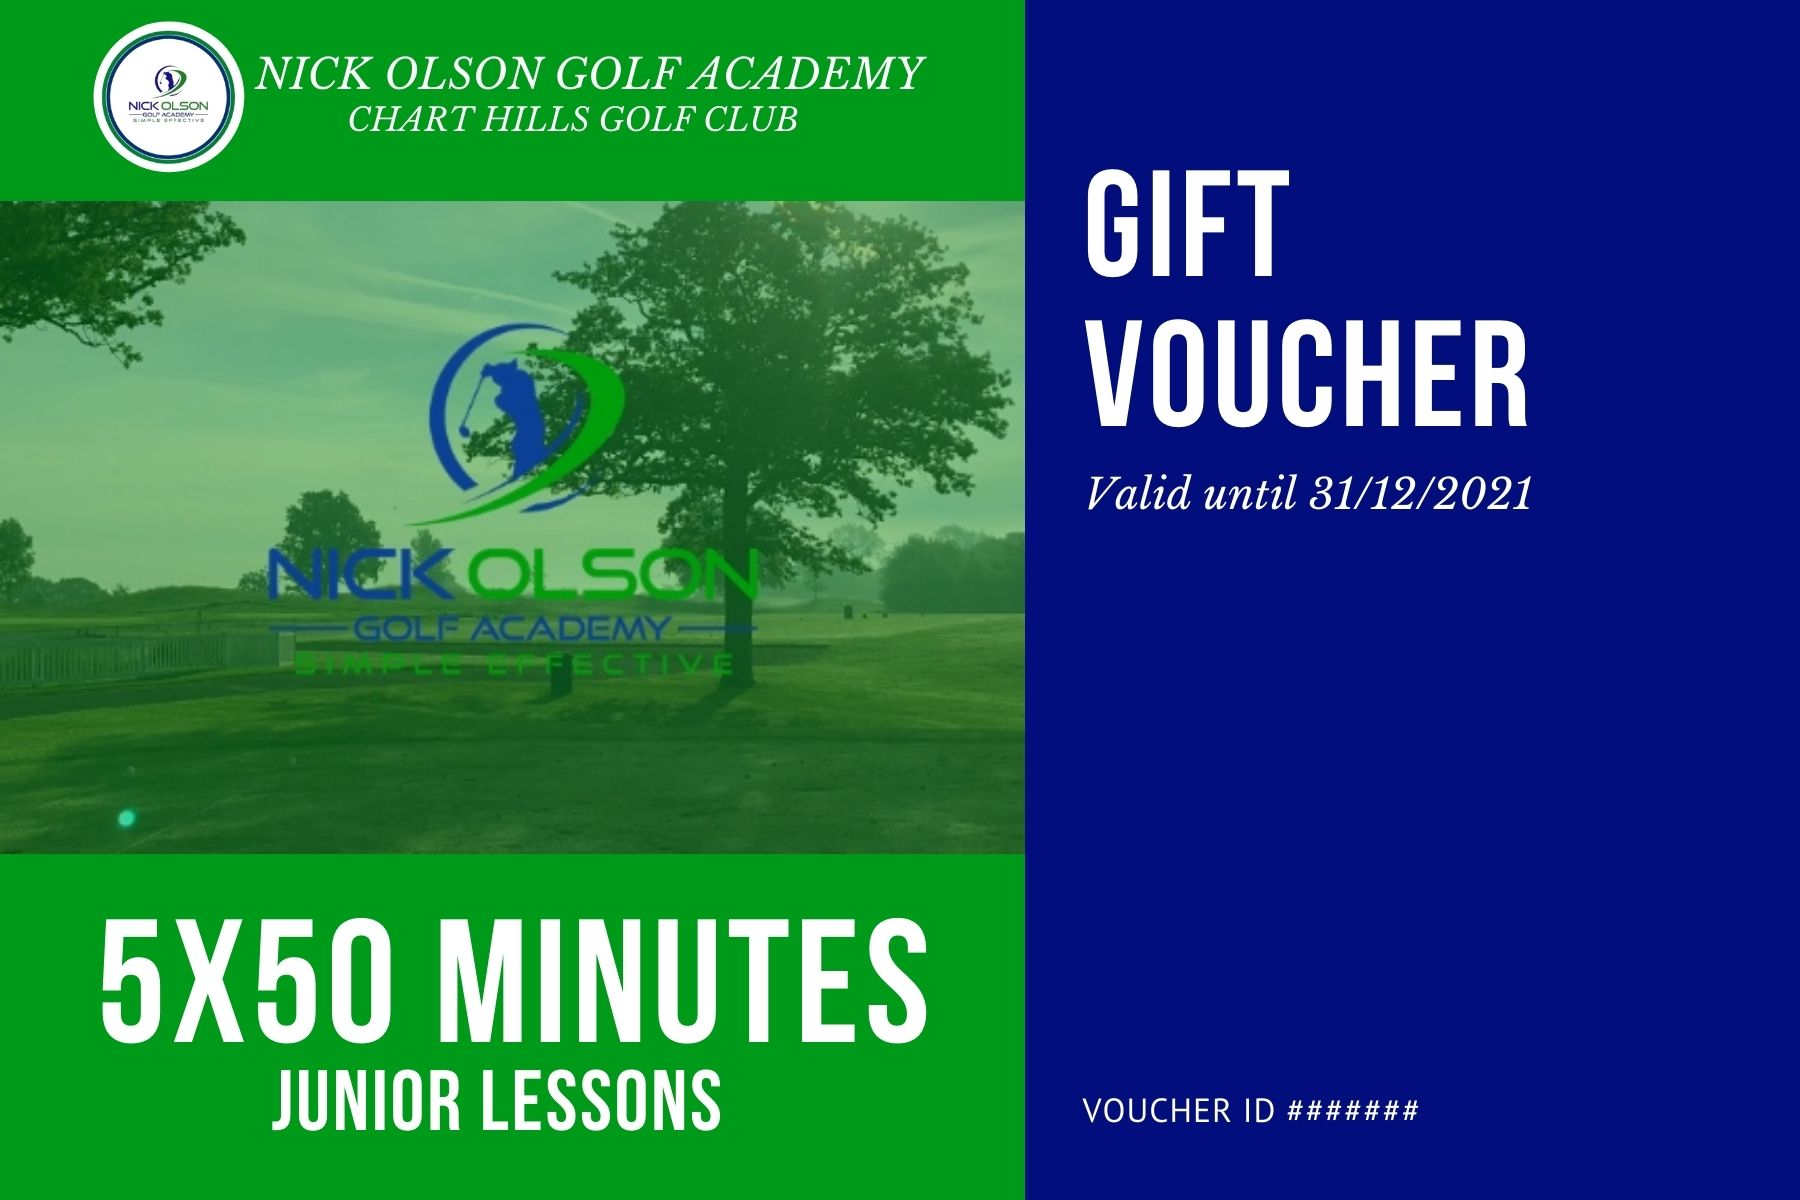 JUNIOR 5x50 MINUTE GOLF LESSONS